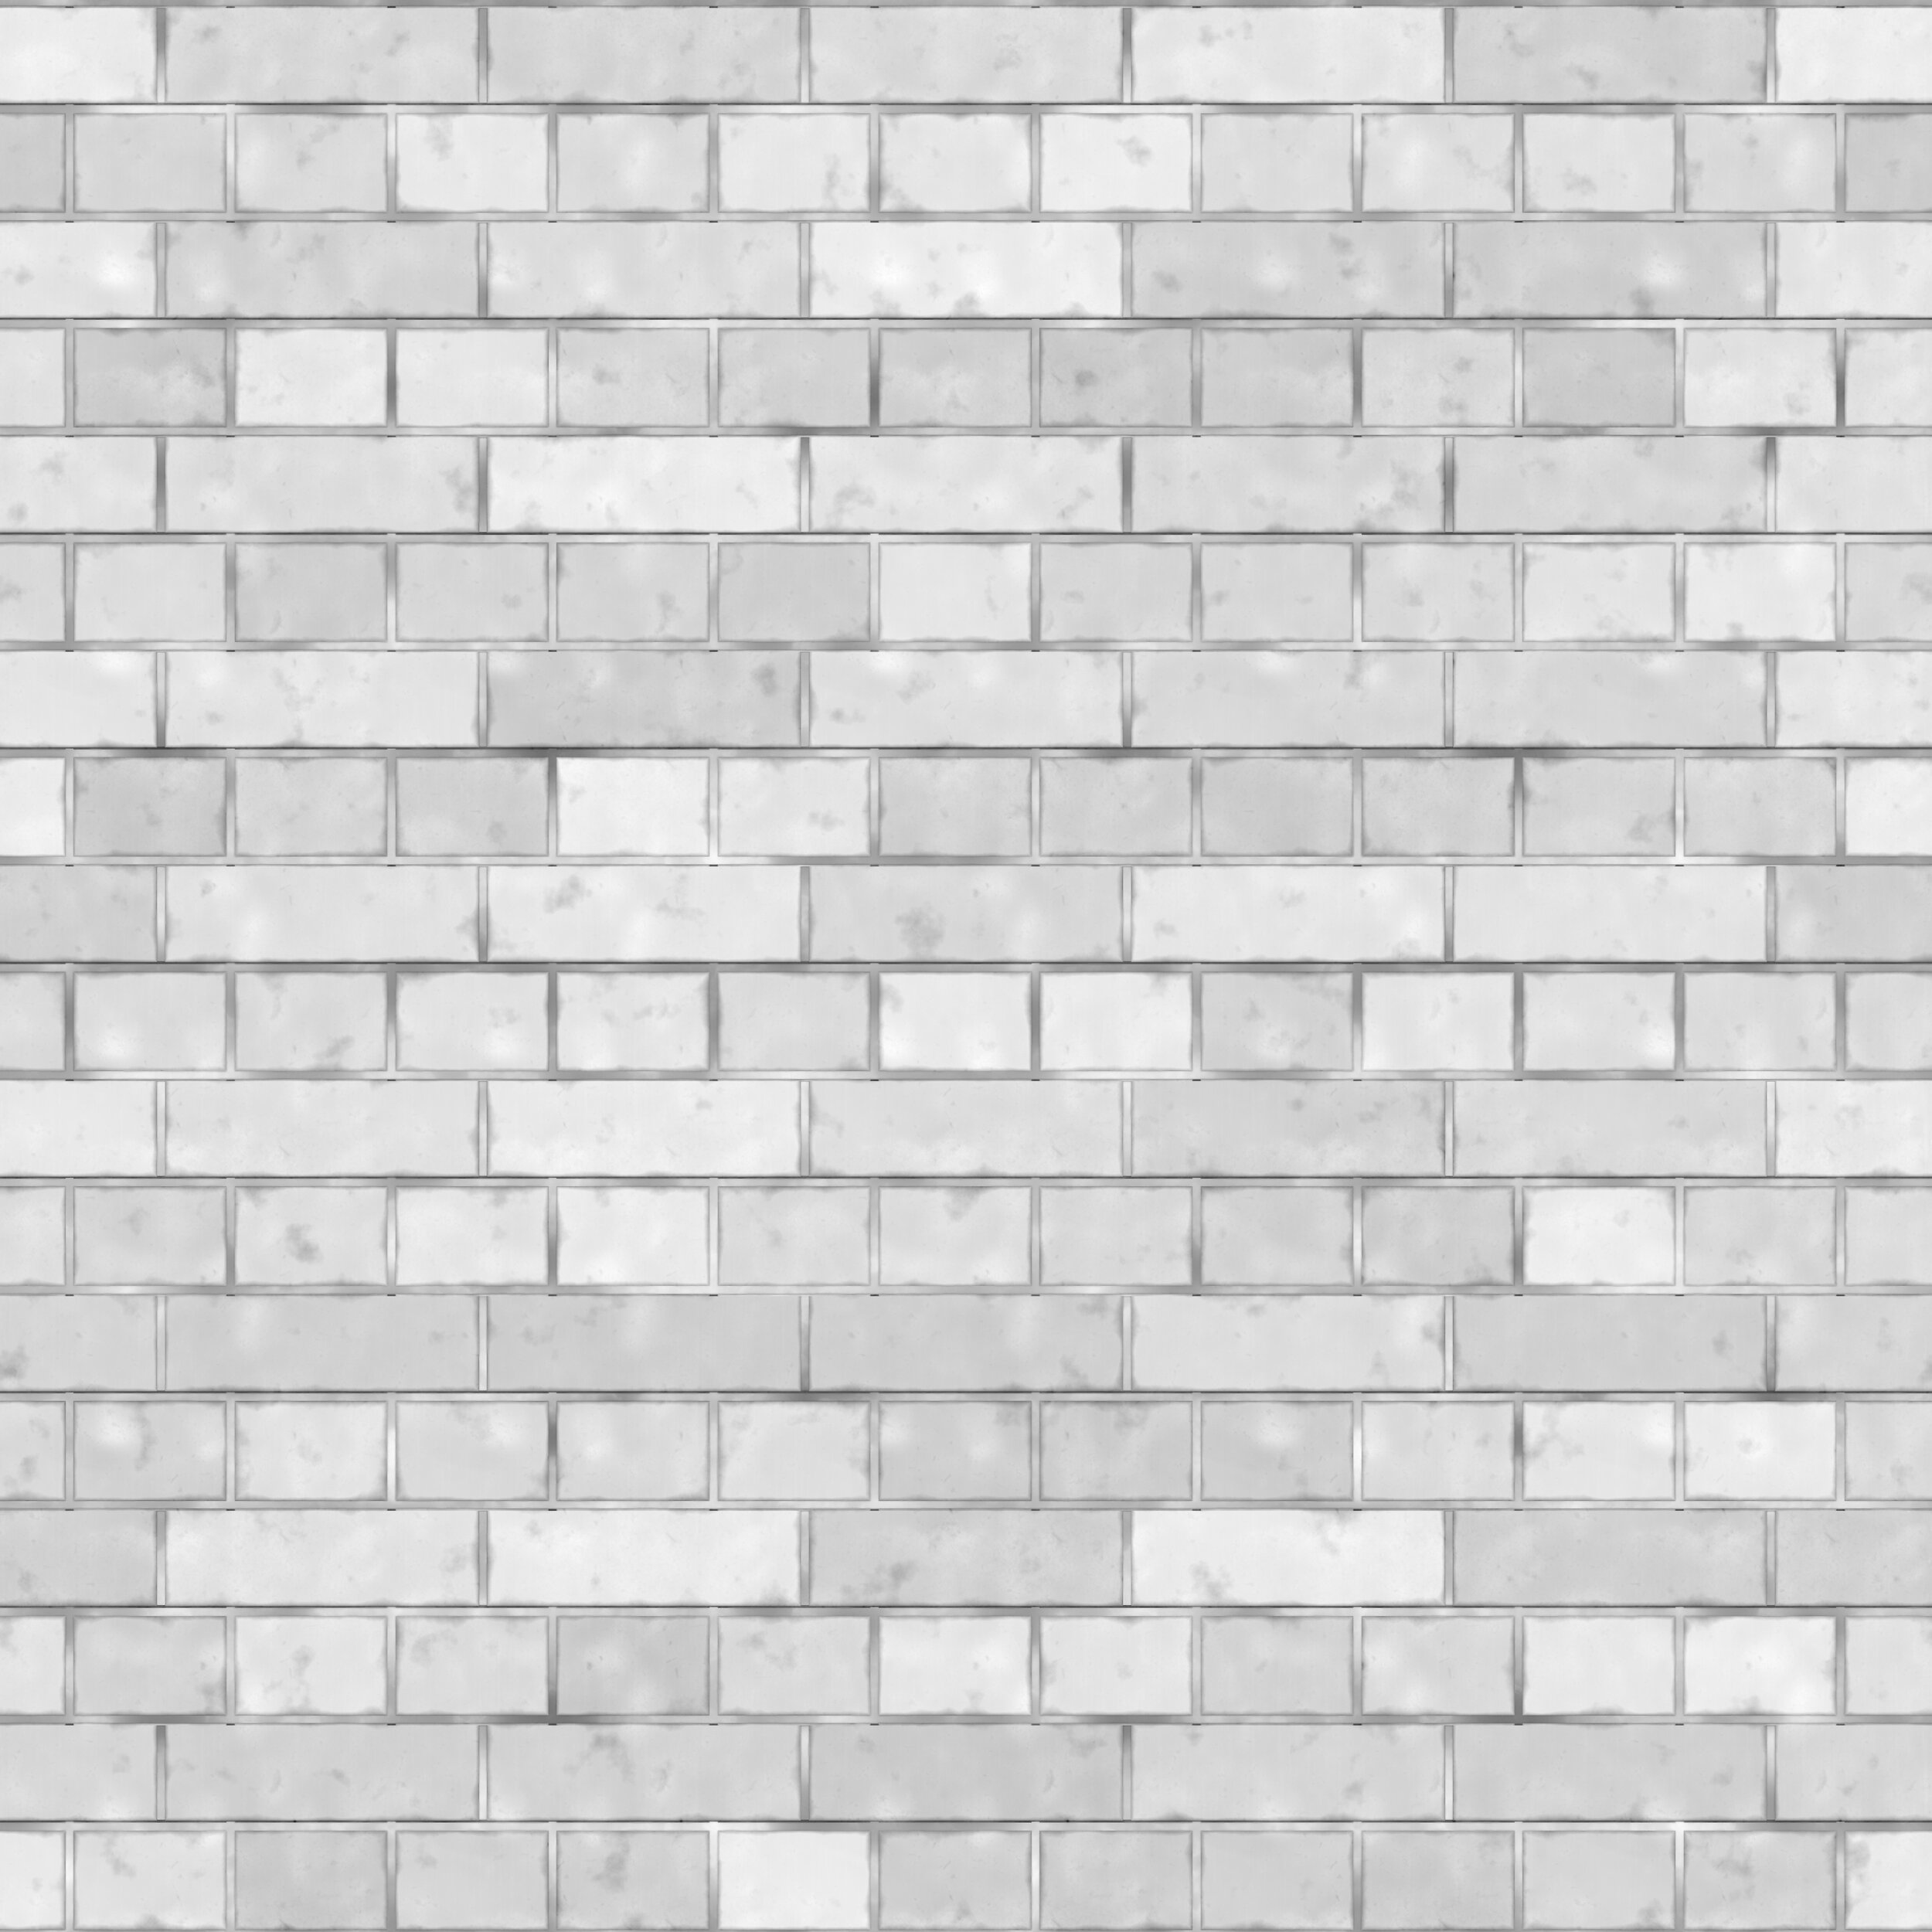 Bricks_AI_01C_Gray_DISP.jpg